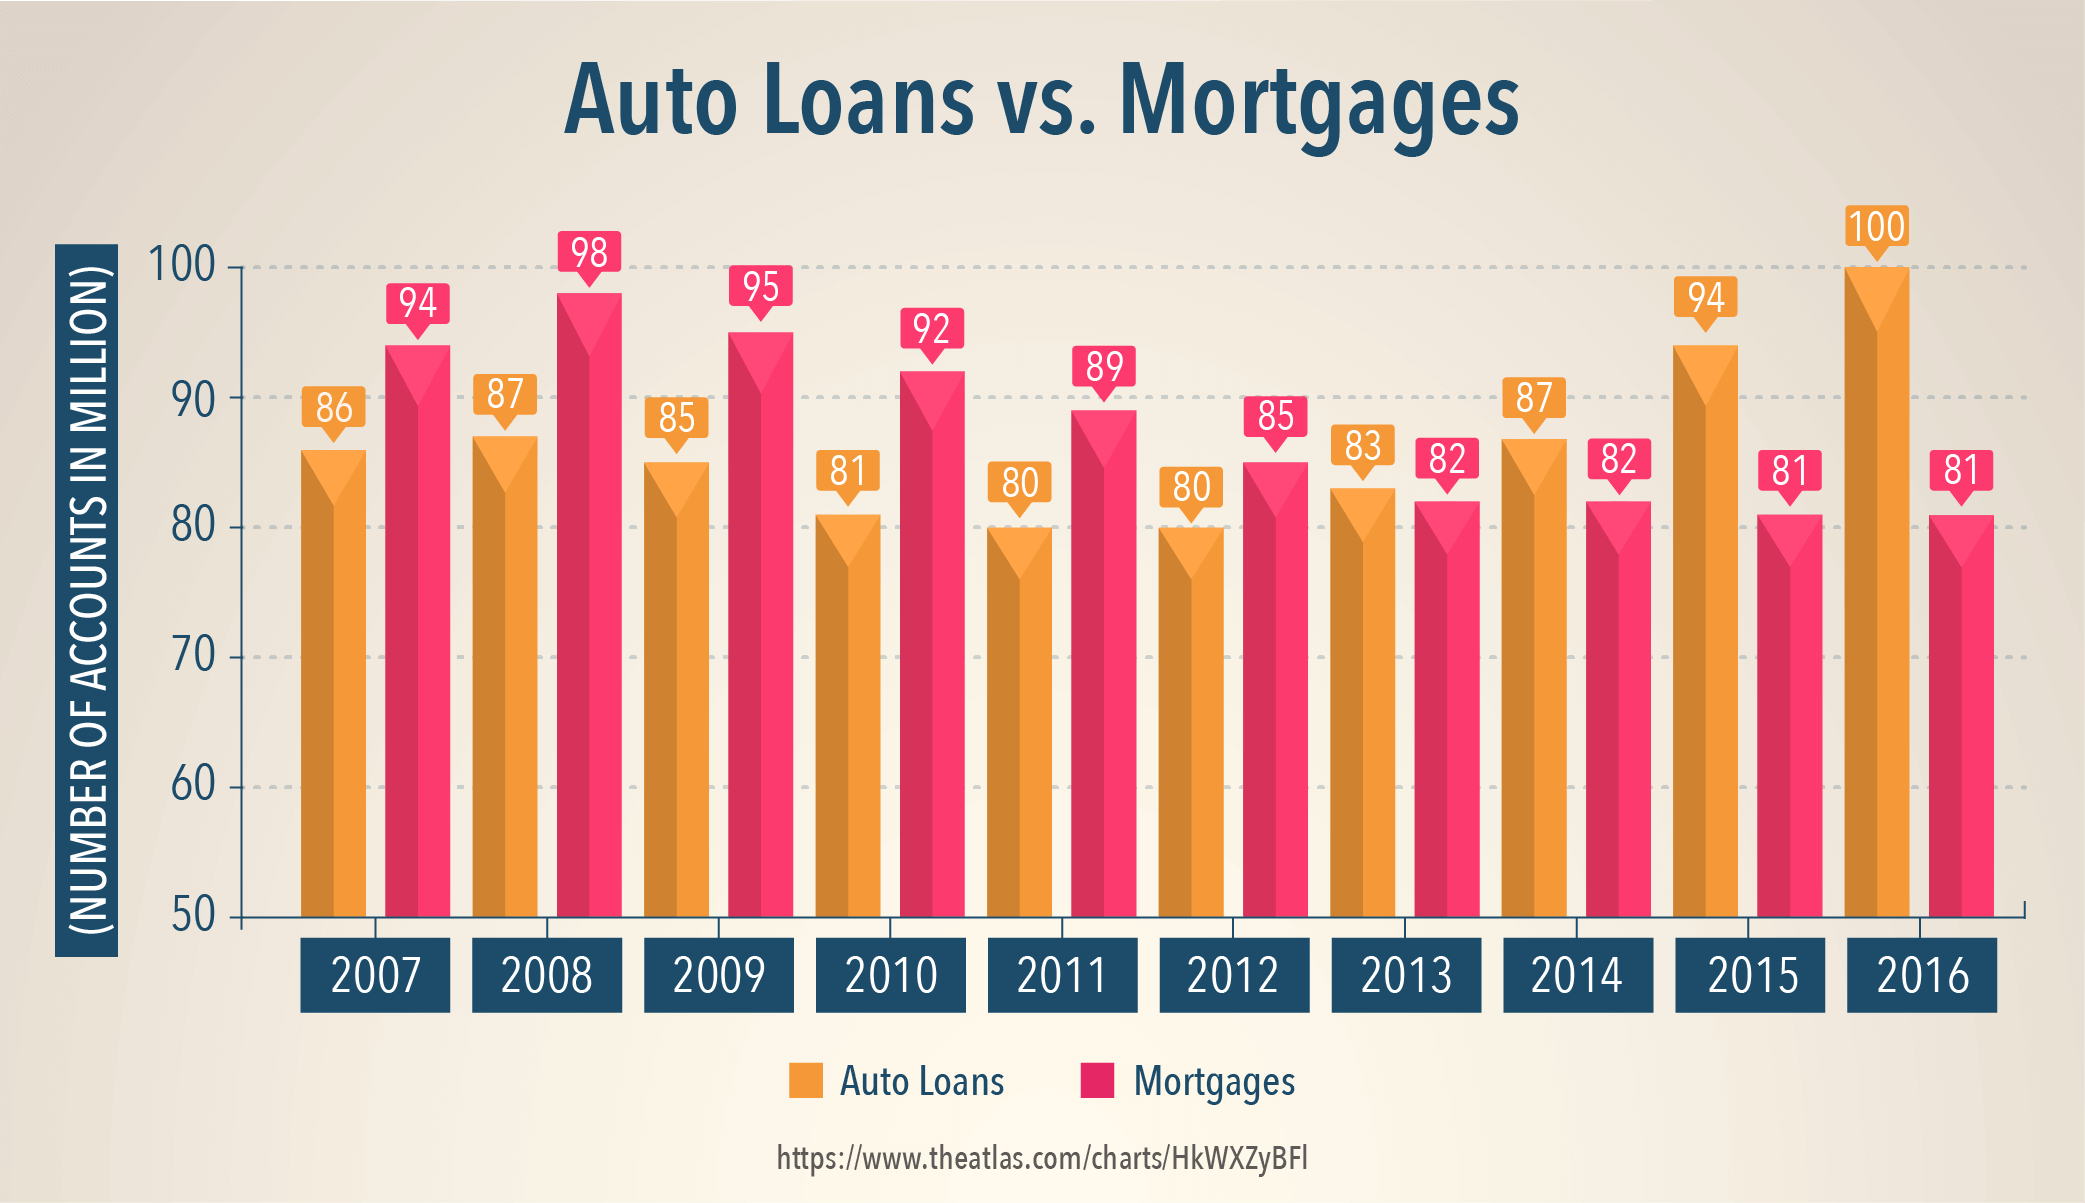 Auto Loans vs. Mortgages